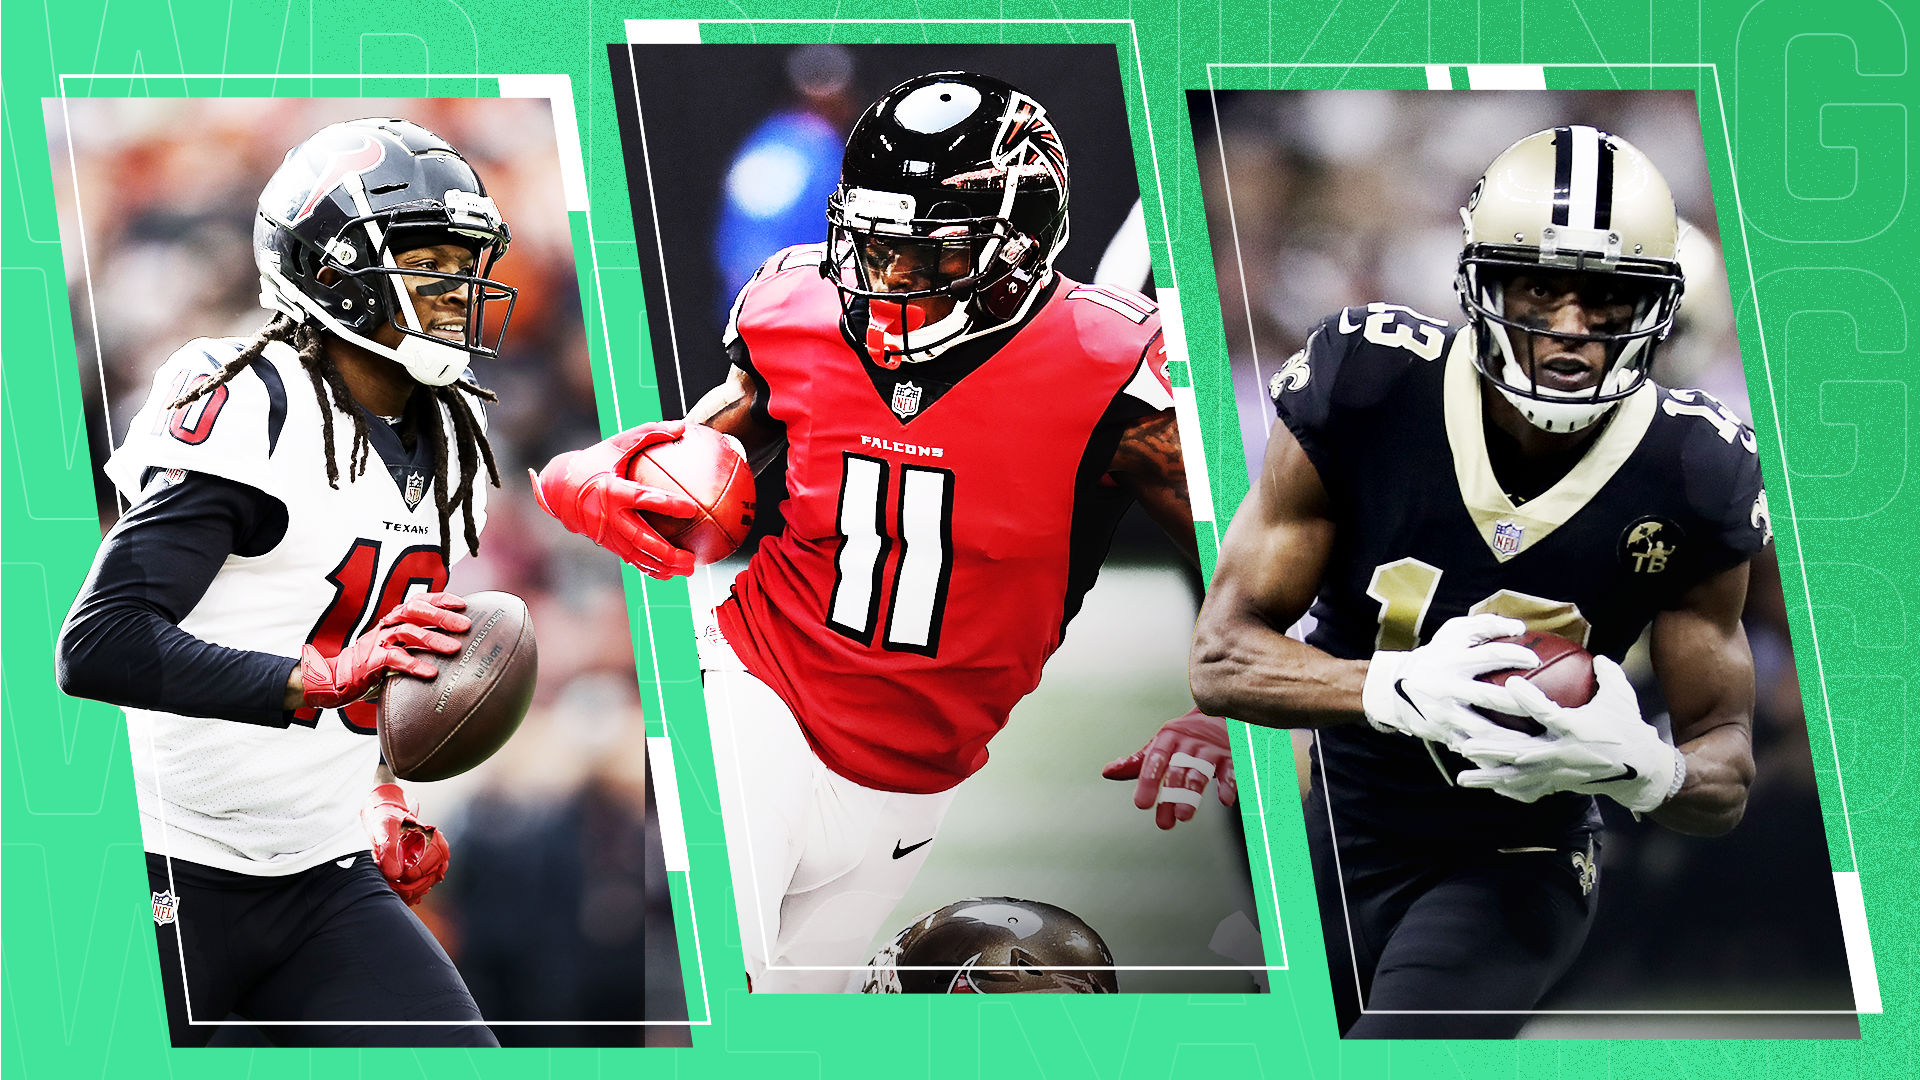 Best Wide Receivers 2020.Ranking The Nfl S Top 25 Wide Receivers For 2019 Sporting News